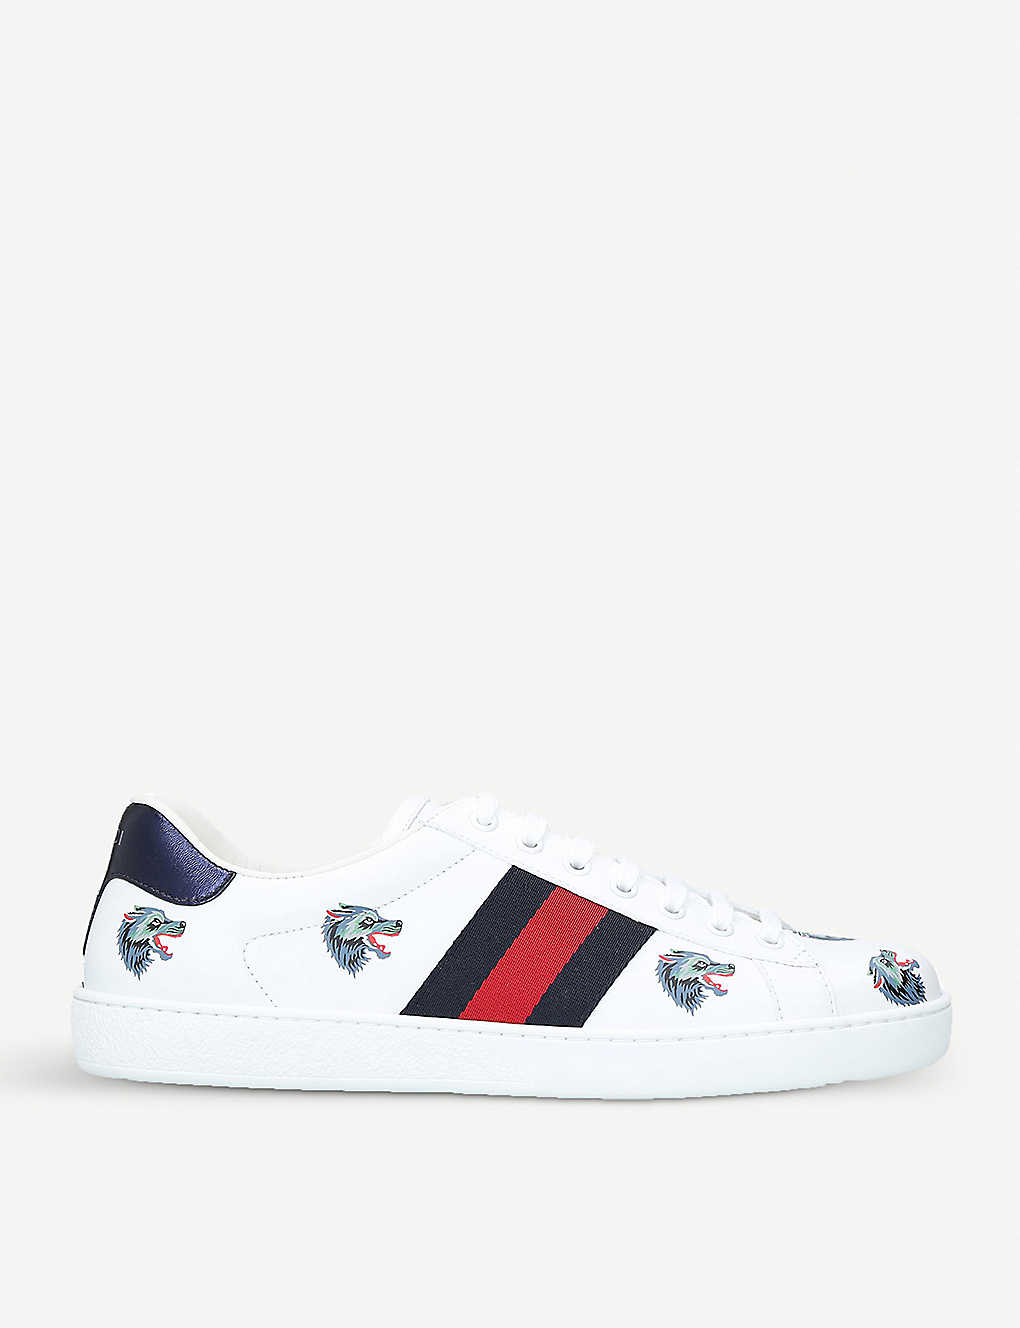 acc32924f66 ... New Ace wolf-embroidered leather trainers zoom ...